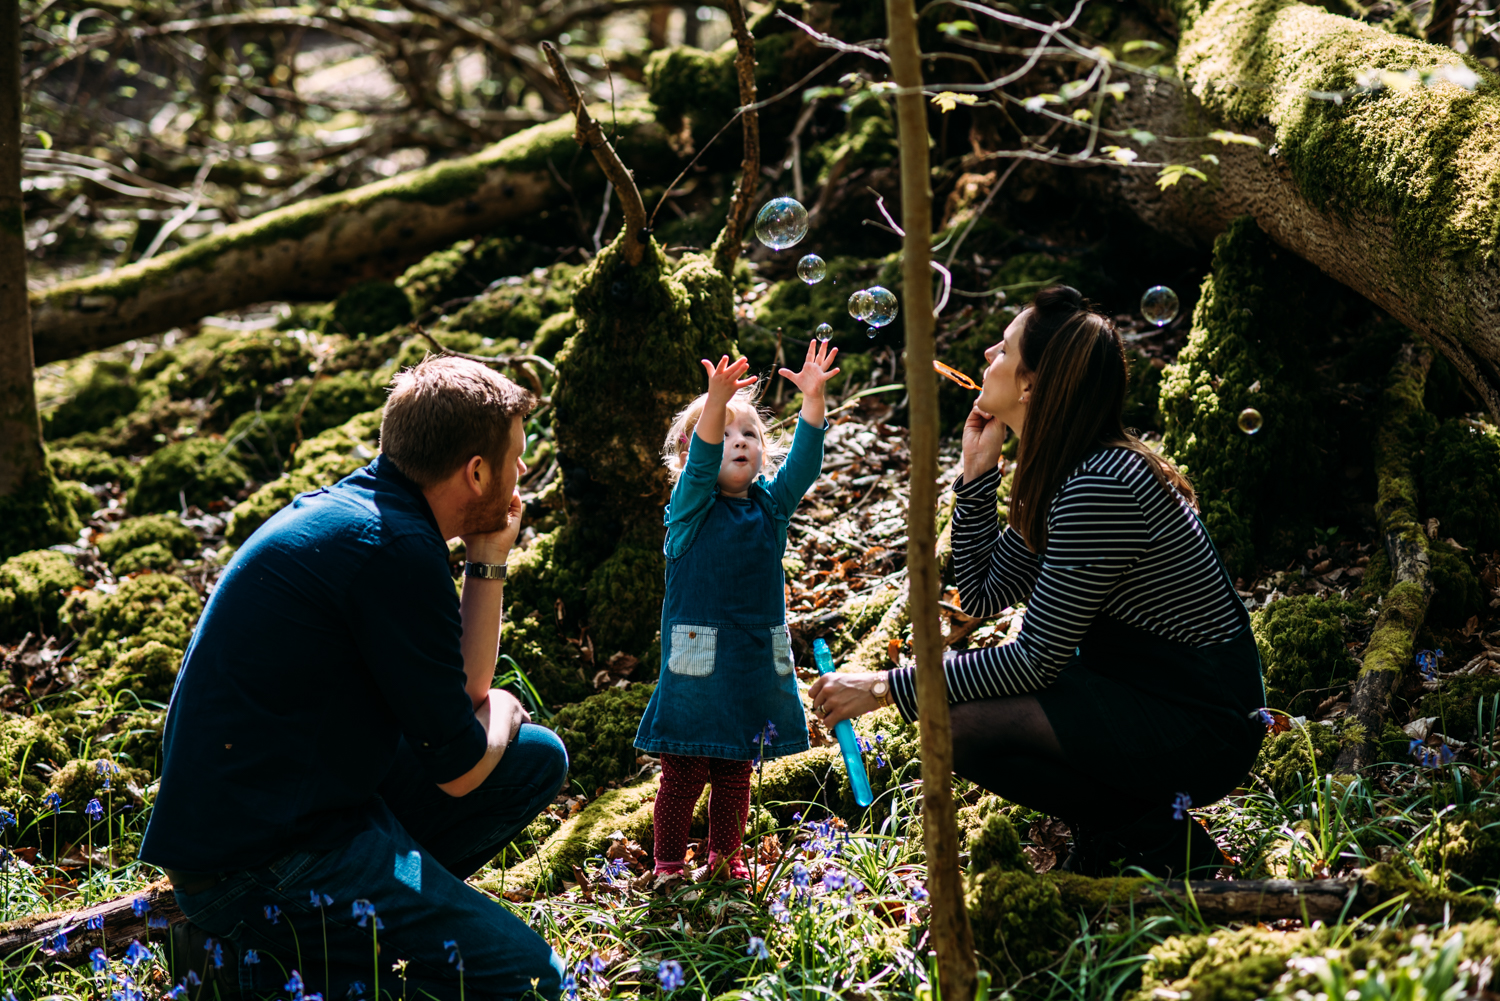 A little girl reaches up to touch bubbles her mother is blowing as the family sit amongs bluebells in a wood in Somerset for this relaxed, unposed family photoshoot in Bath, Somerset.